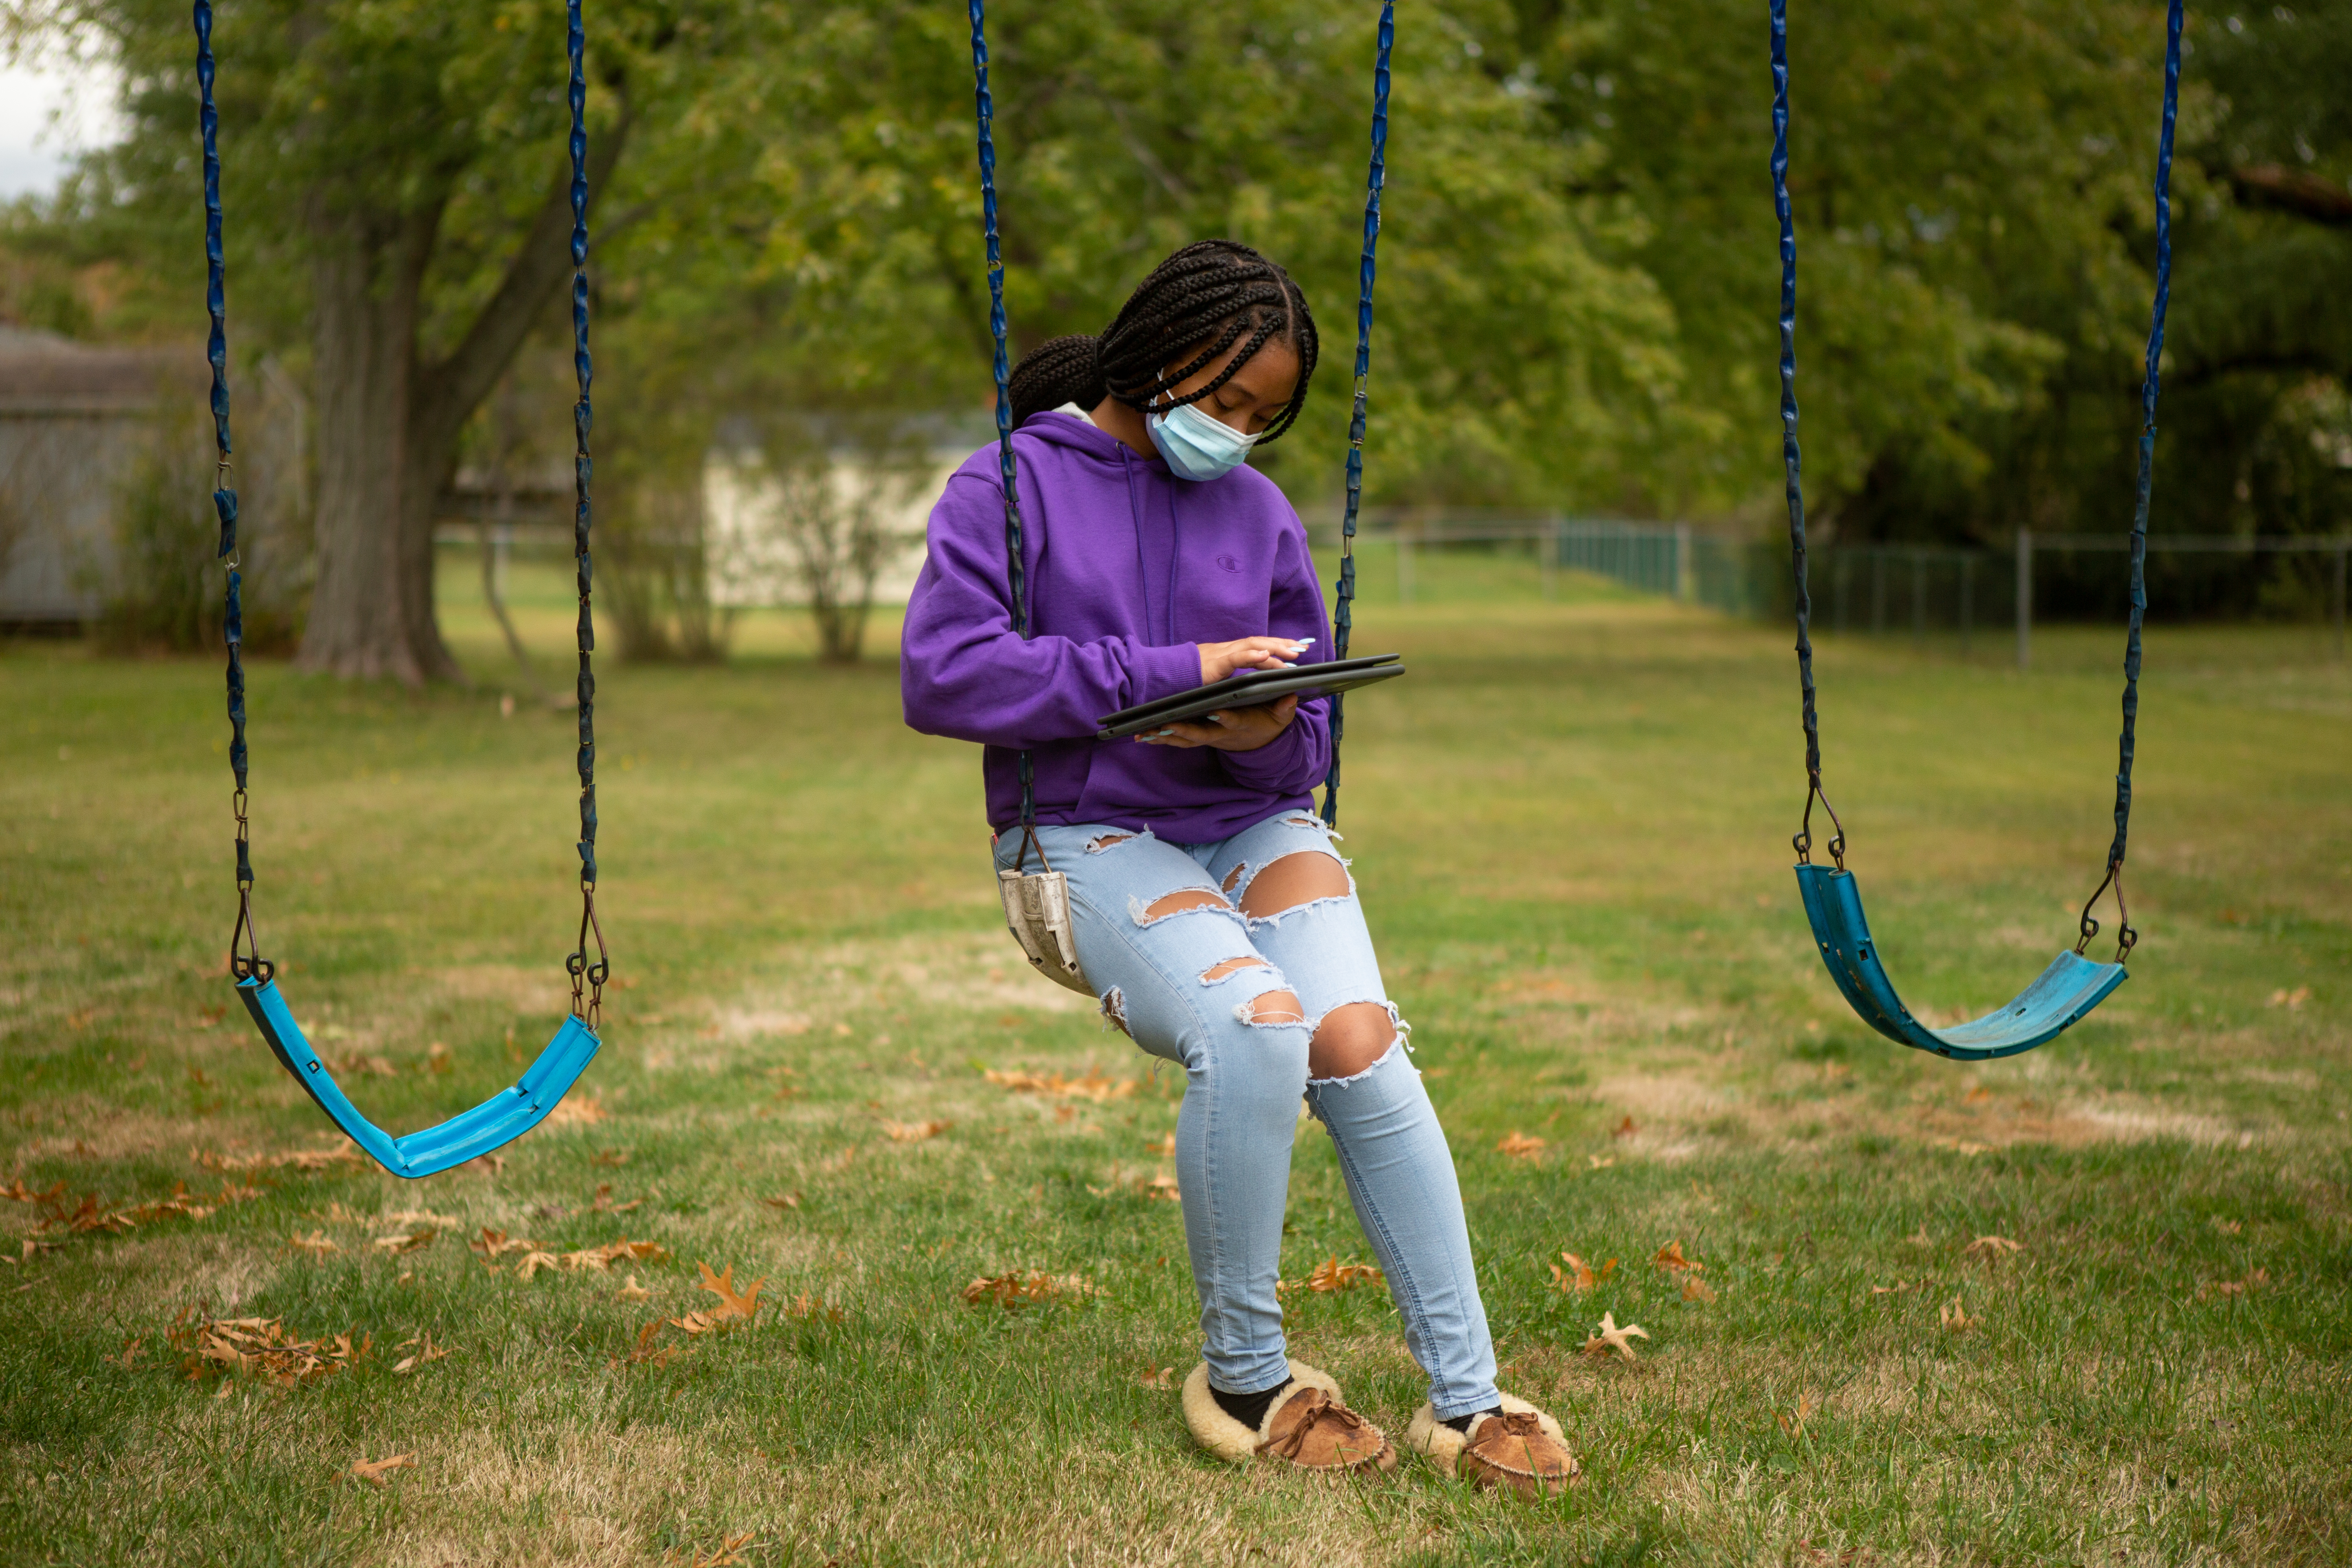 Middletown High School students Pilar Brooks sitting outside on a swing wearing a mask.